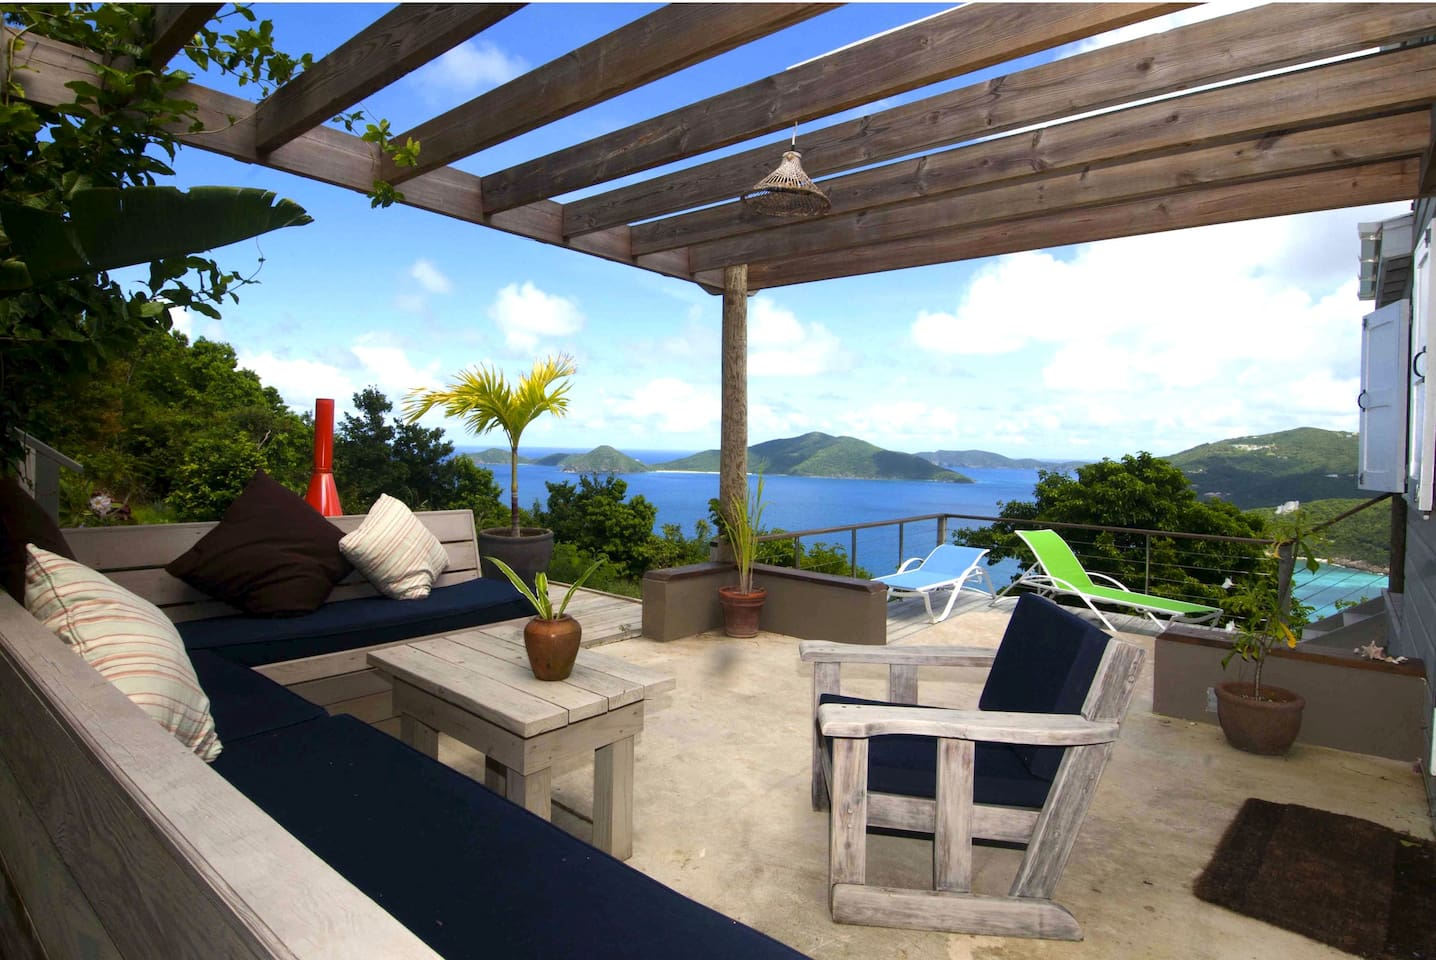 Secluded pergola with outdoor seating and overlooking the chain of islands